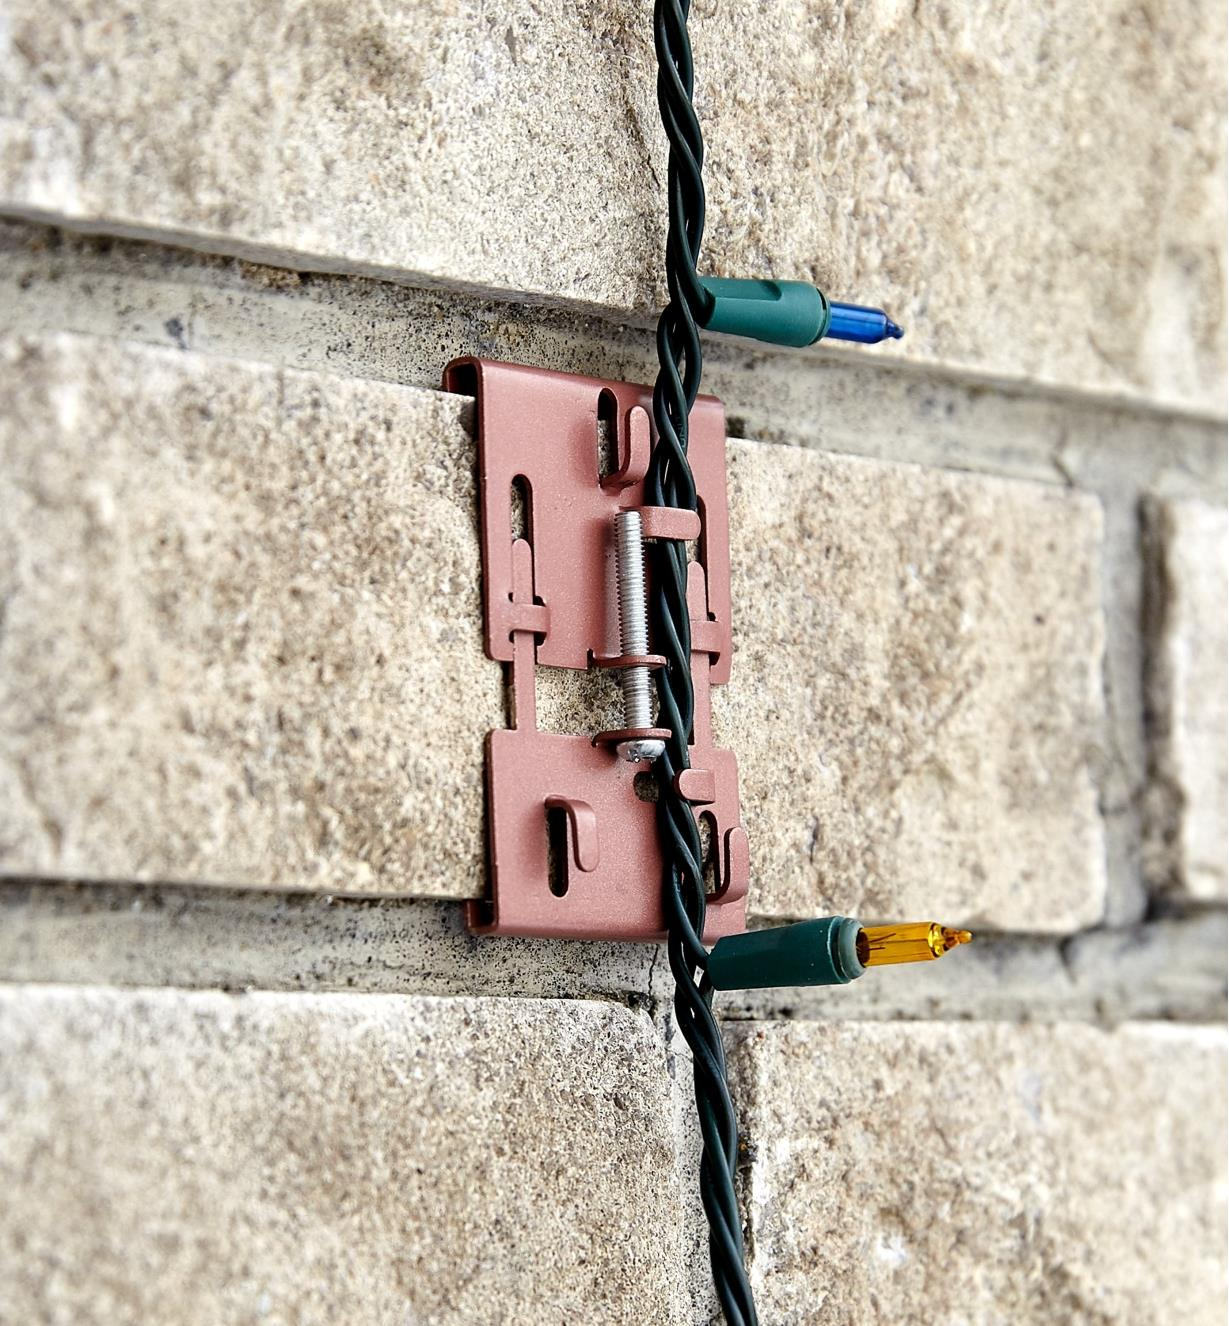 Brick clamp supporting a string of Christmas lights vertically on a brick wall